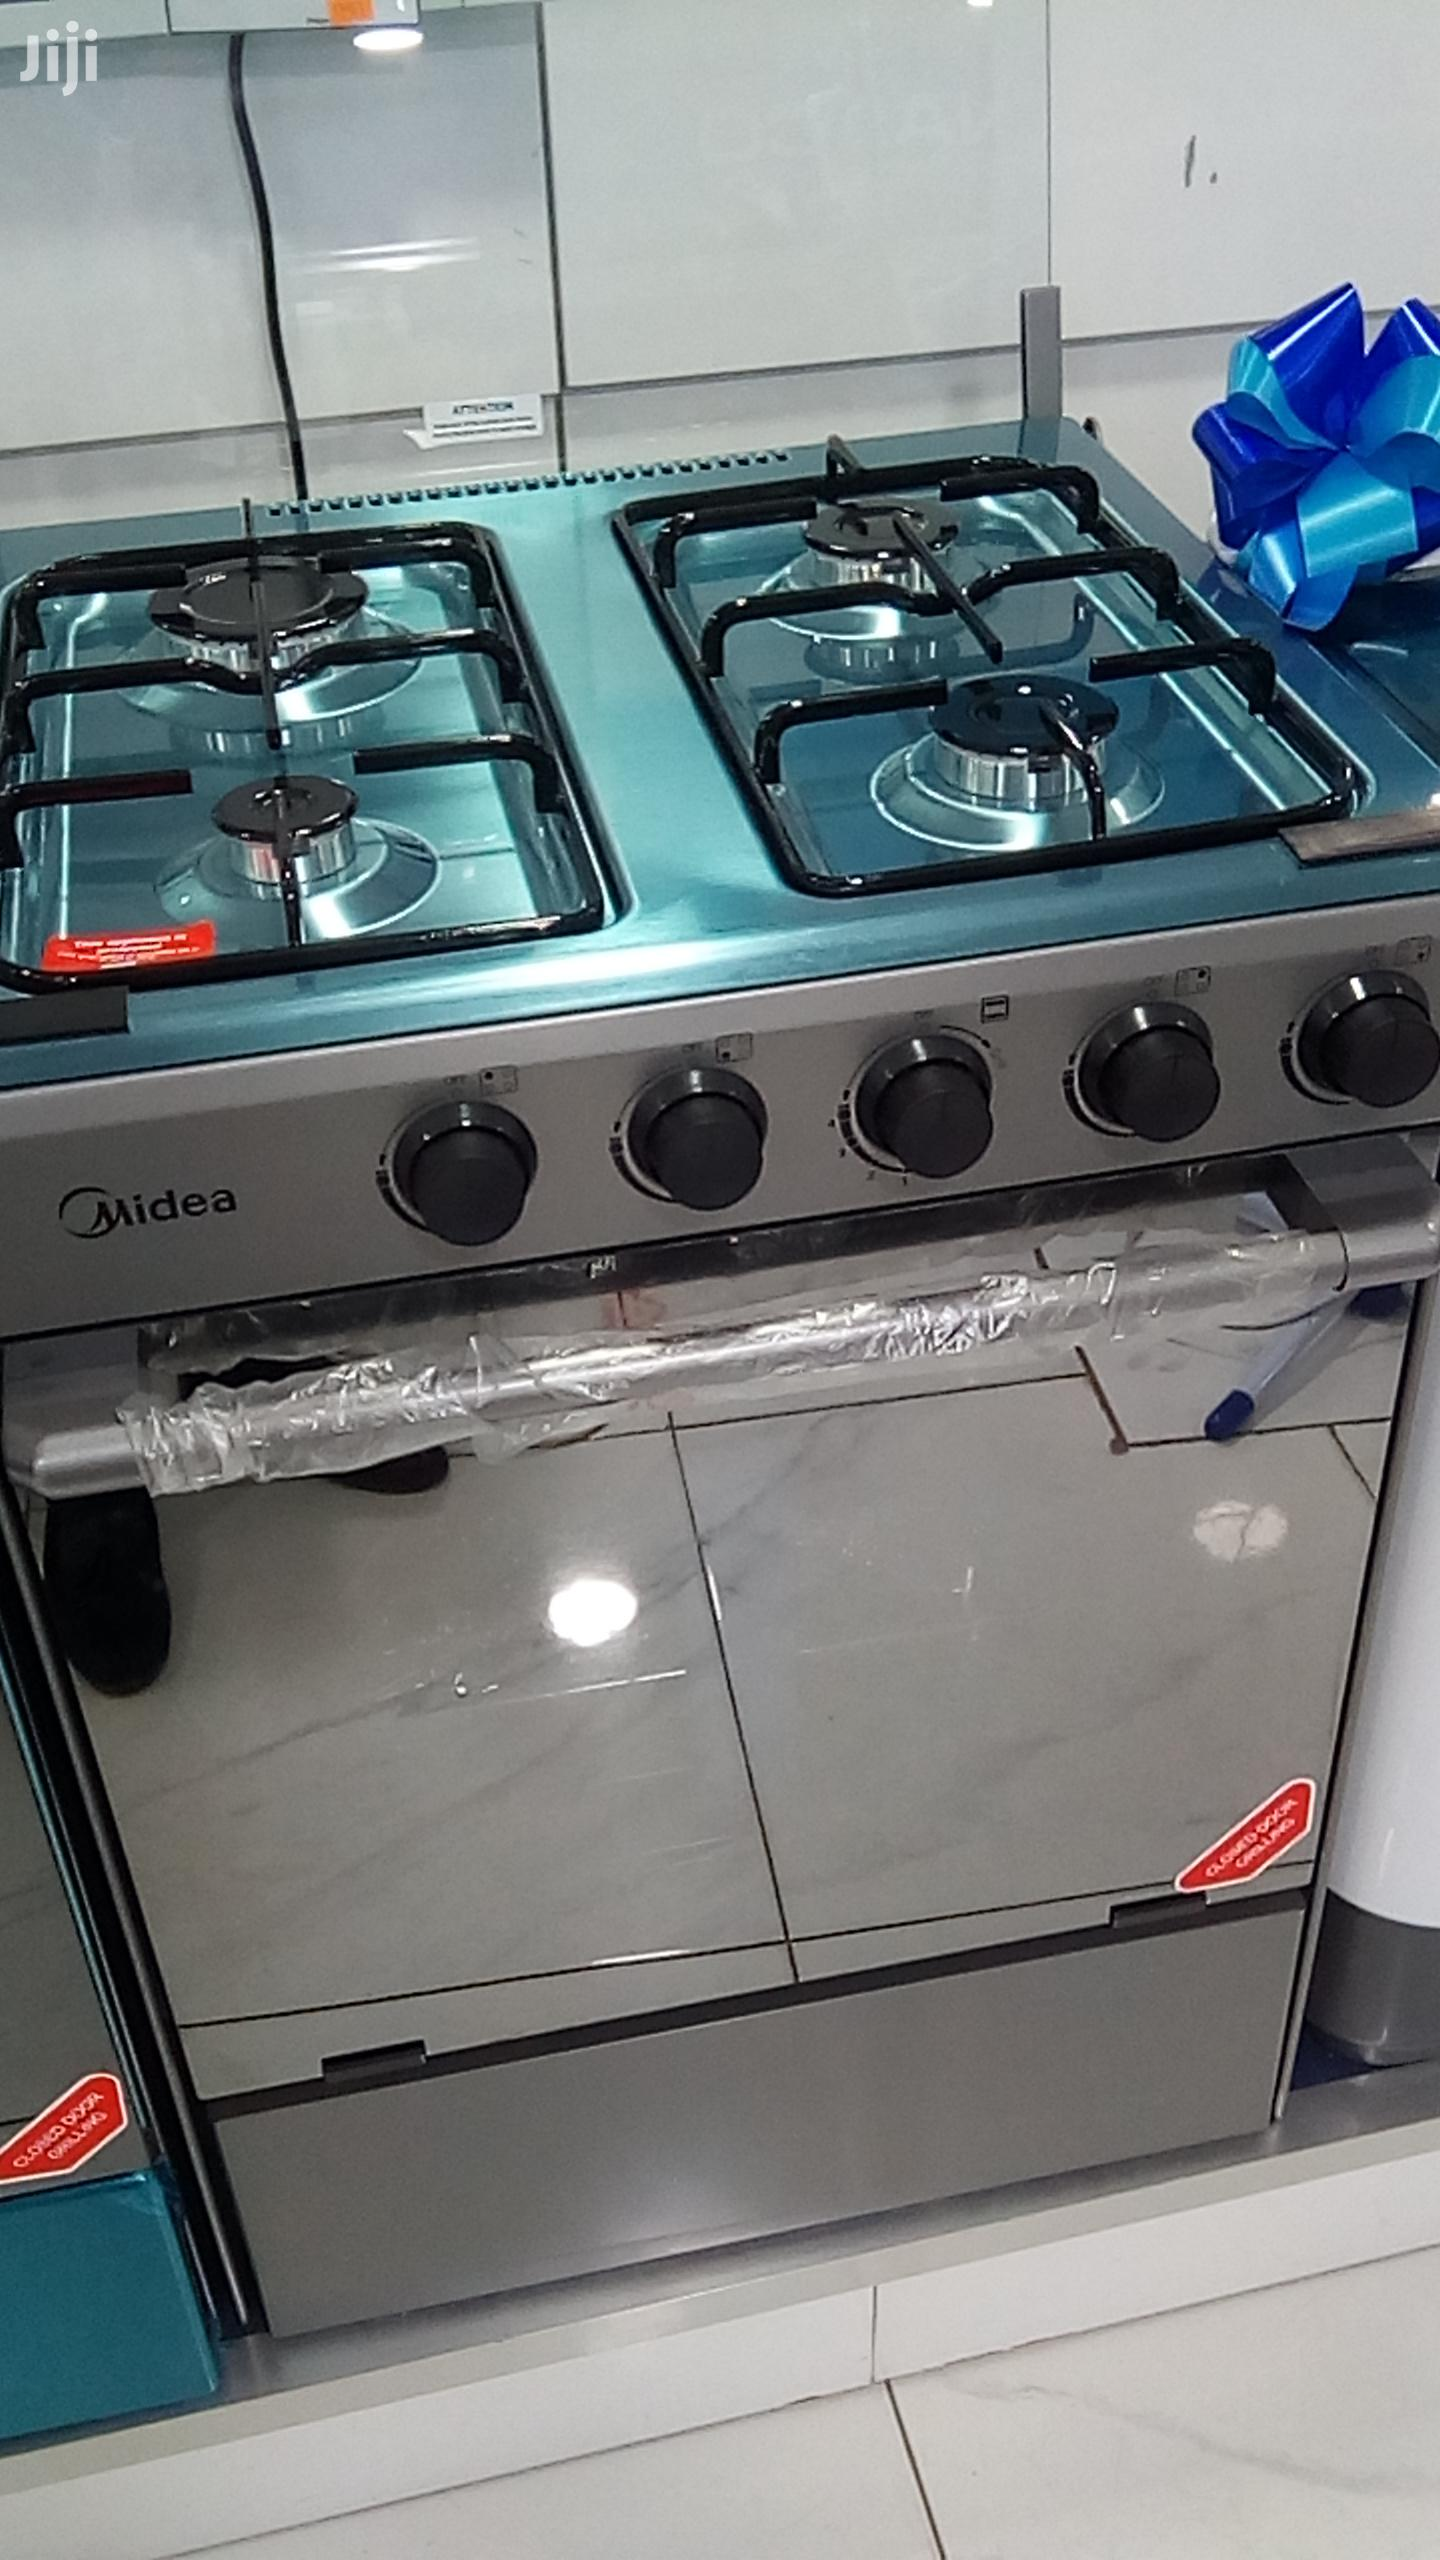 Midea 4 Burner With Oven/Grill | Kitchen Appliances for sale in Kokomlemle, Greater Accra, Ghana